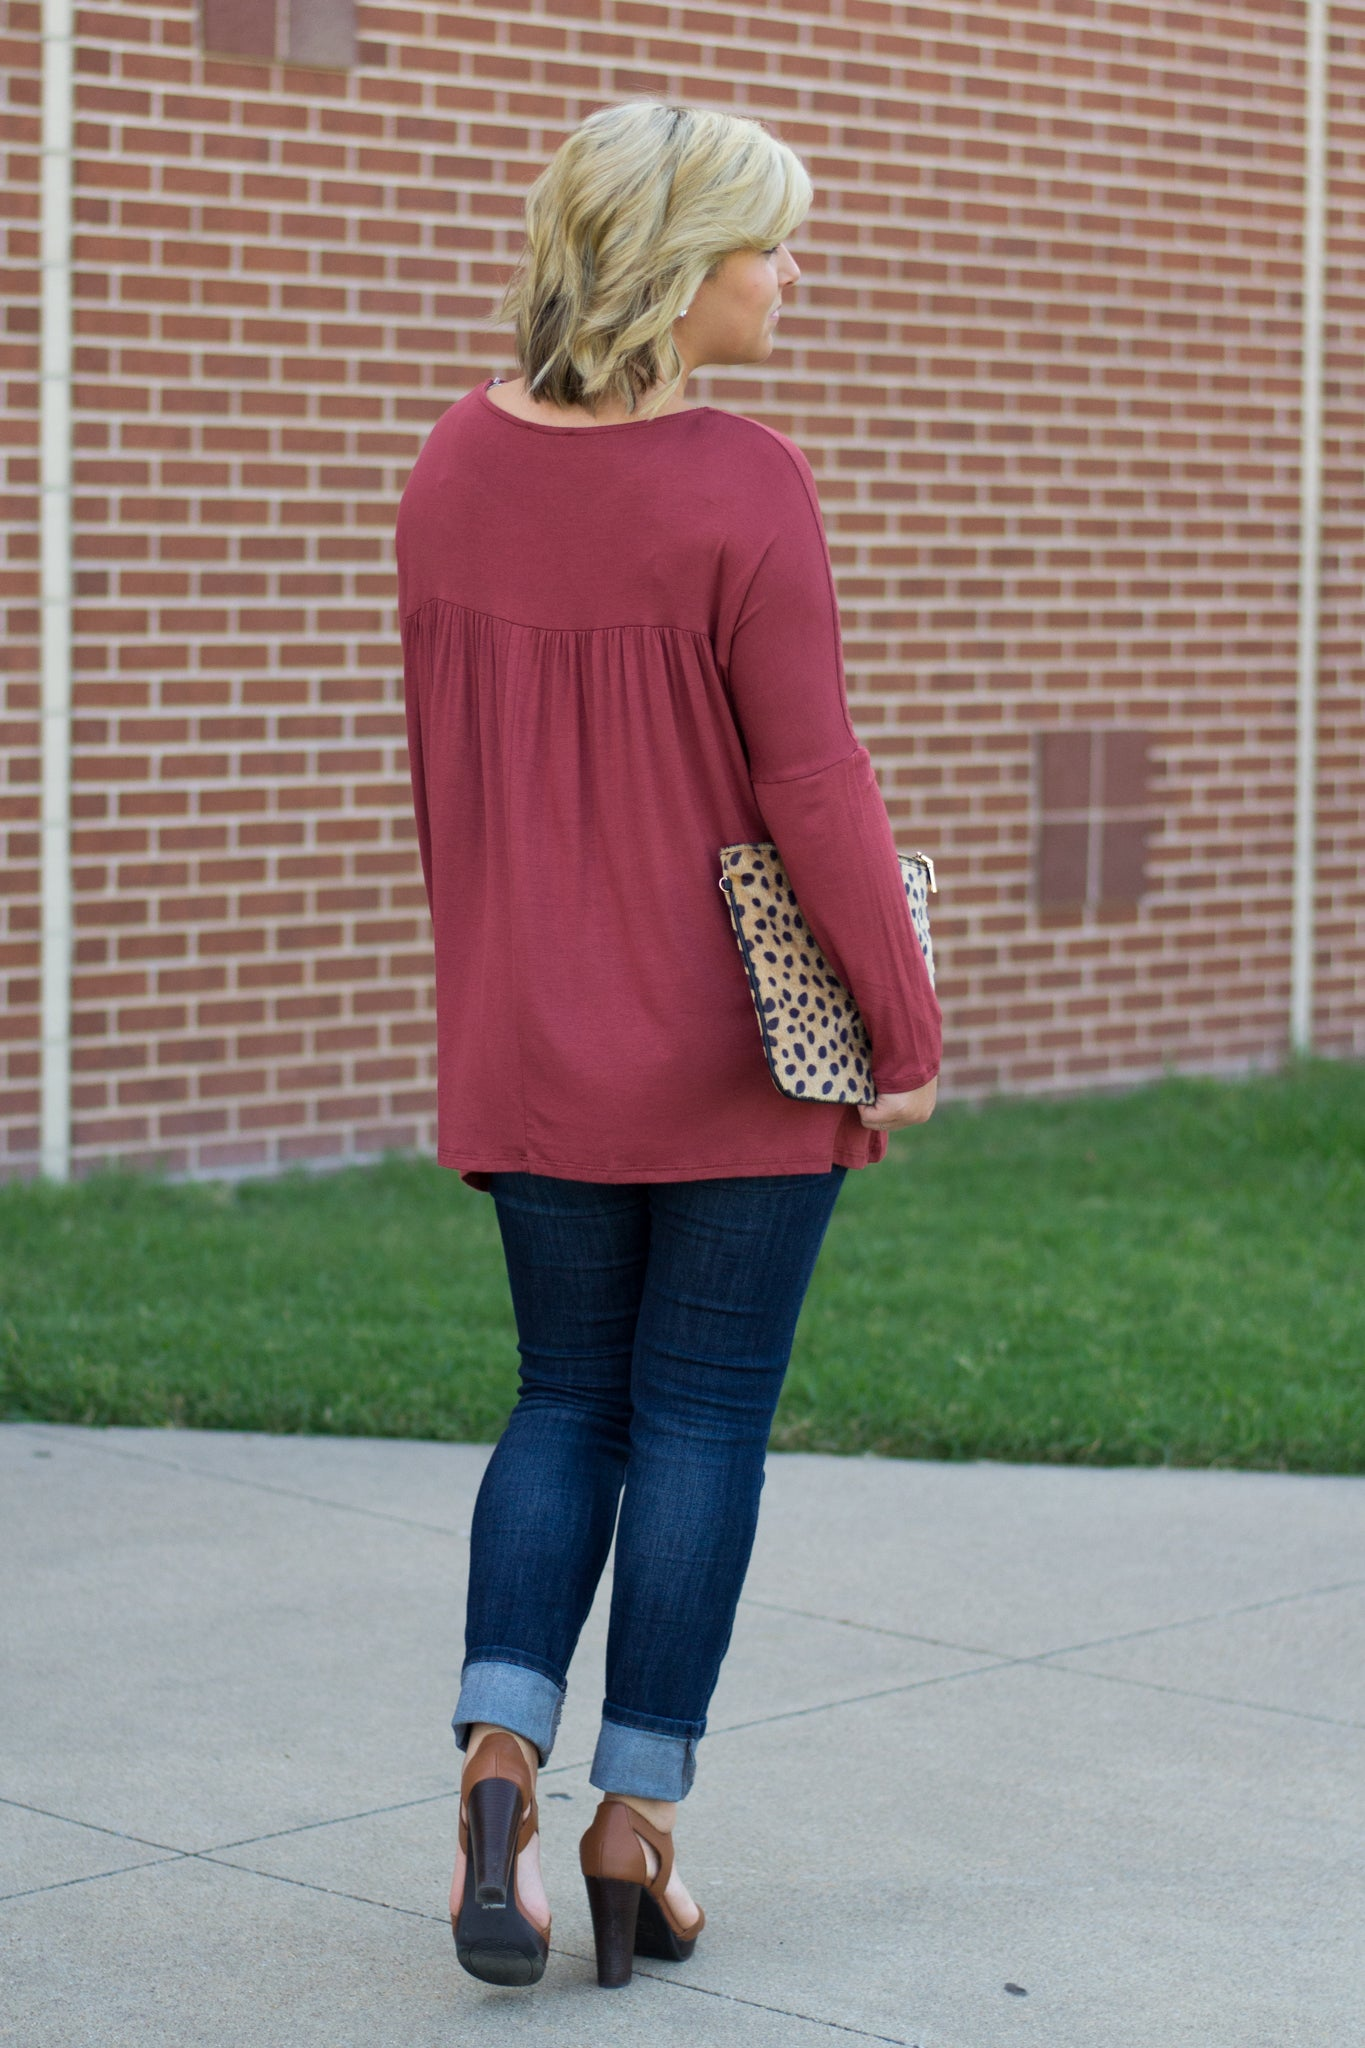 Fall Babydoll Top and Leopard Clutch